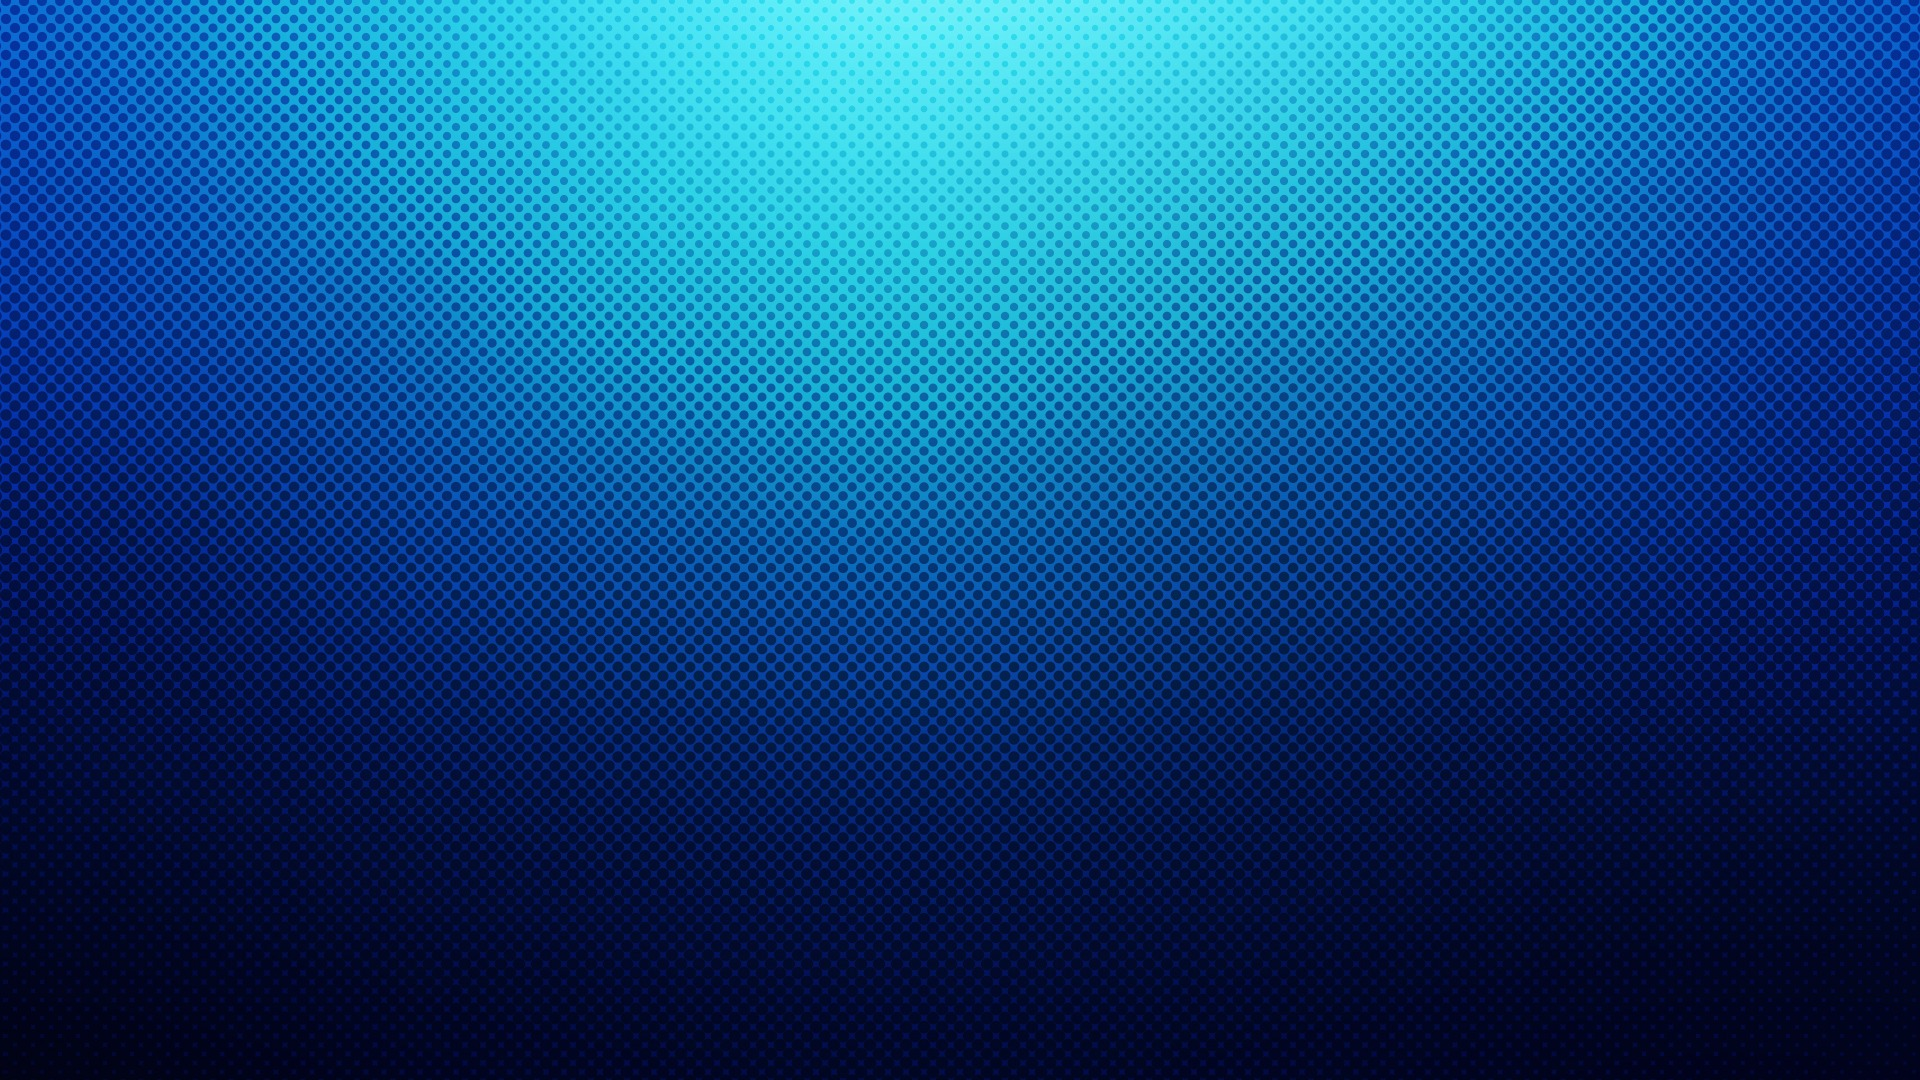 blue blackground